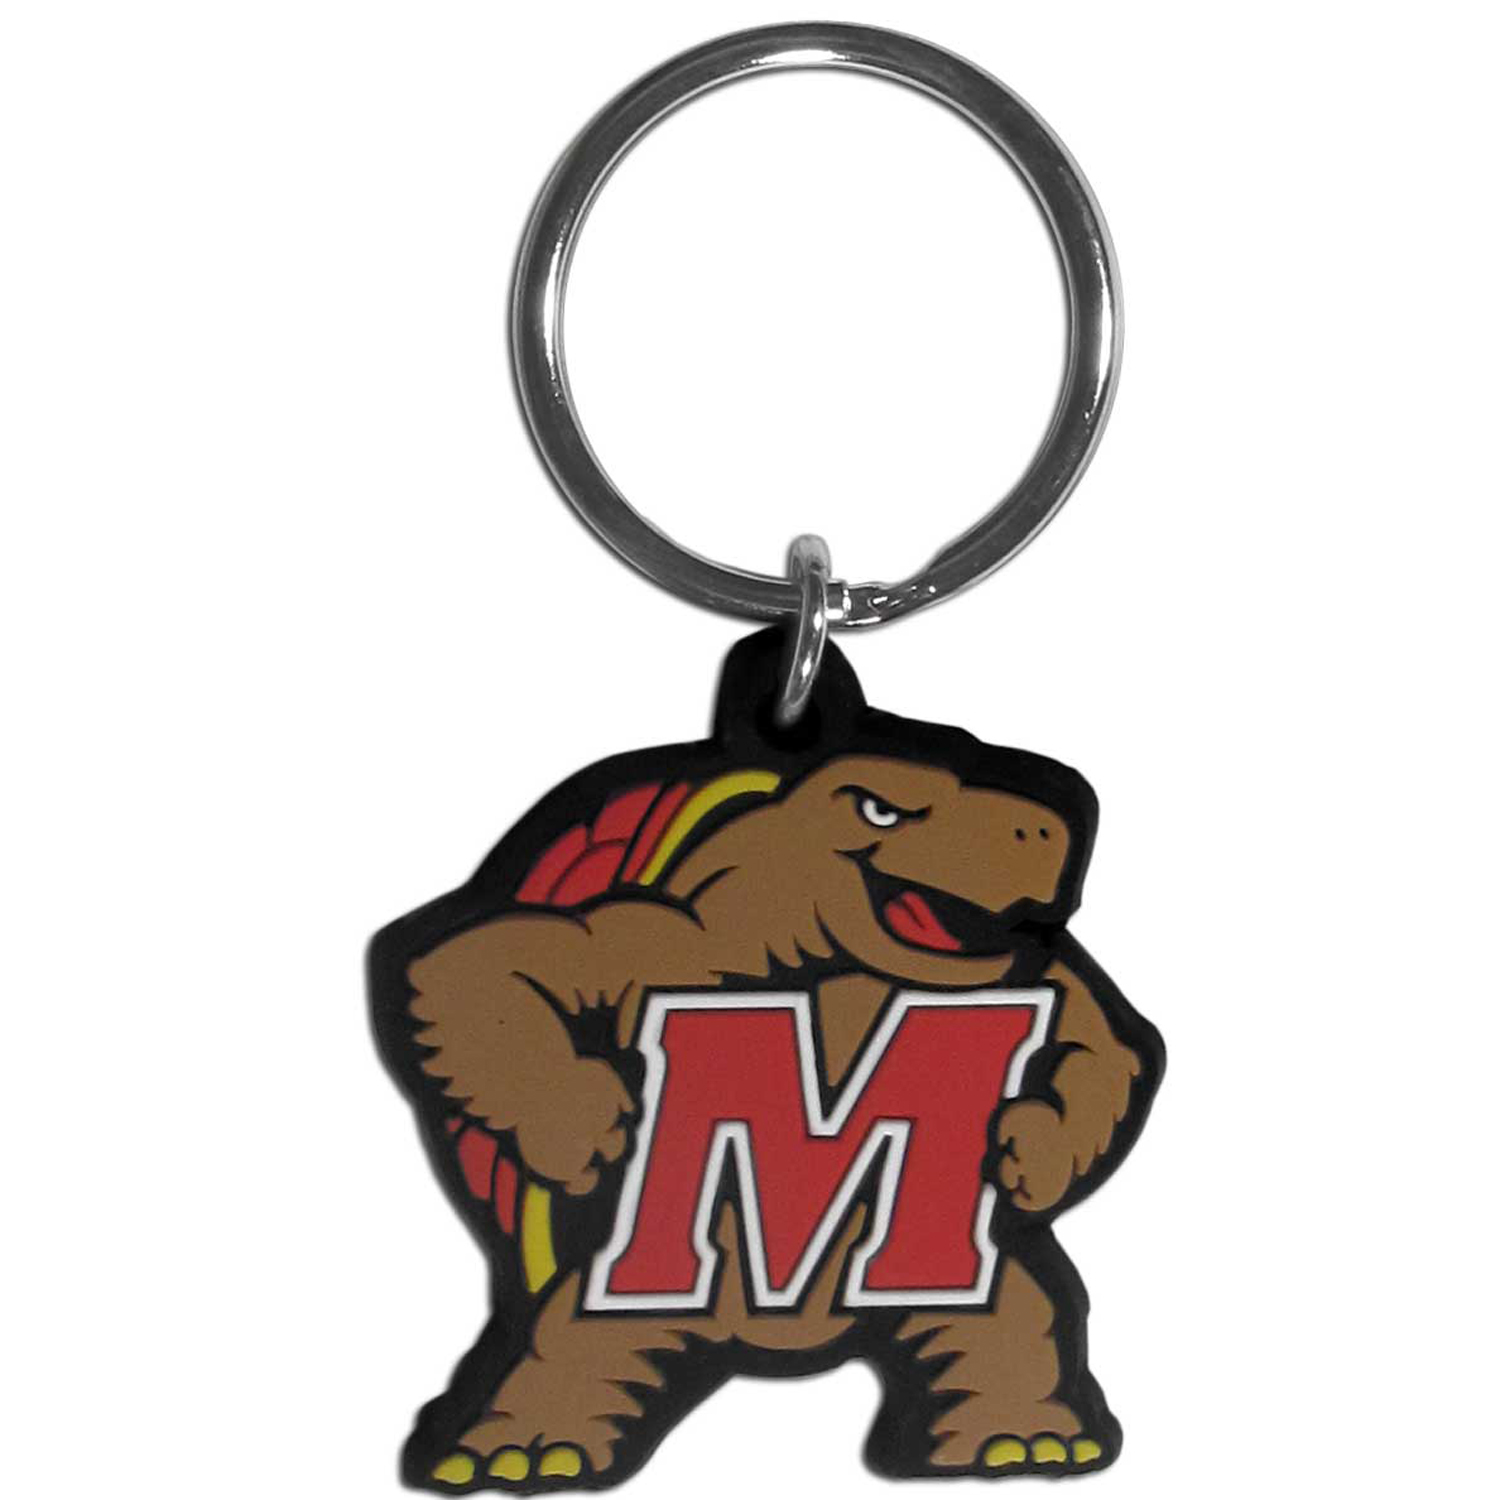 Maryland Terrapins Flex Key Chain - Our fun, flexible Maryland Terrapins key chains are made of a rubbery material that is layered to create a bright, textured logo.